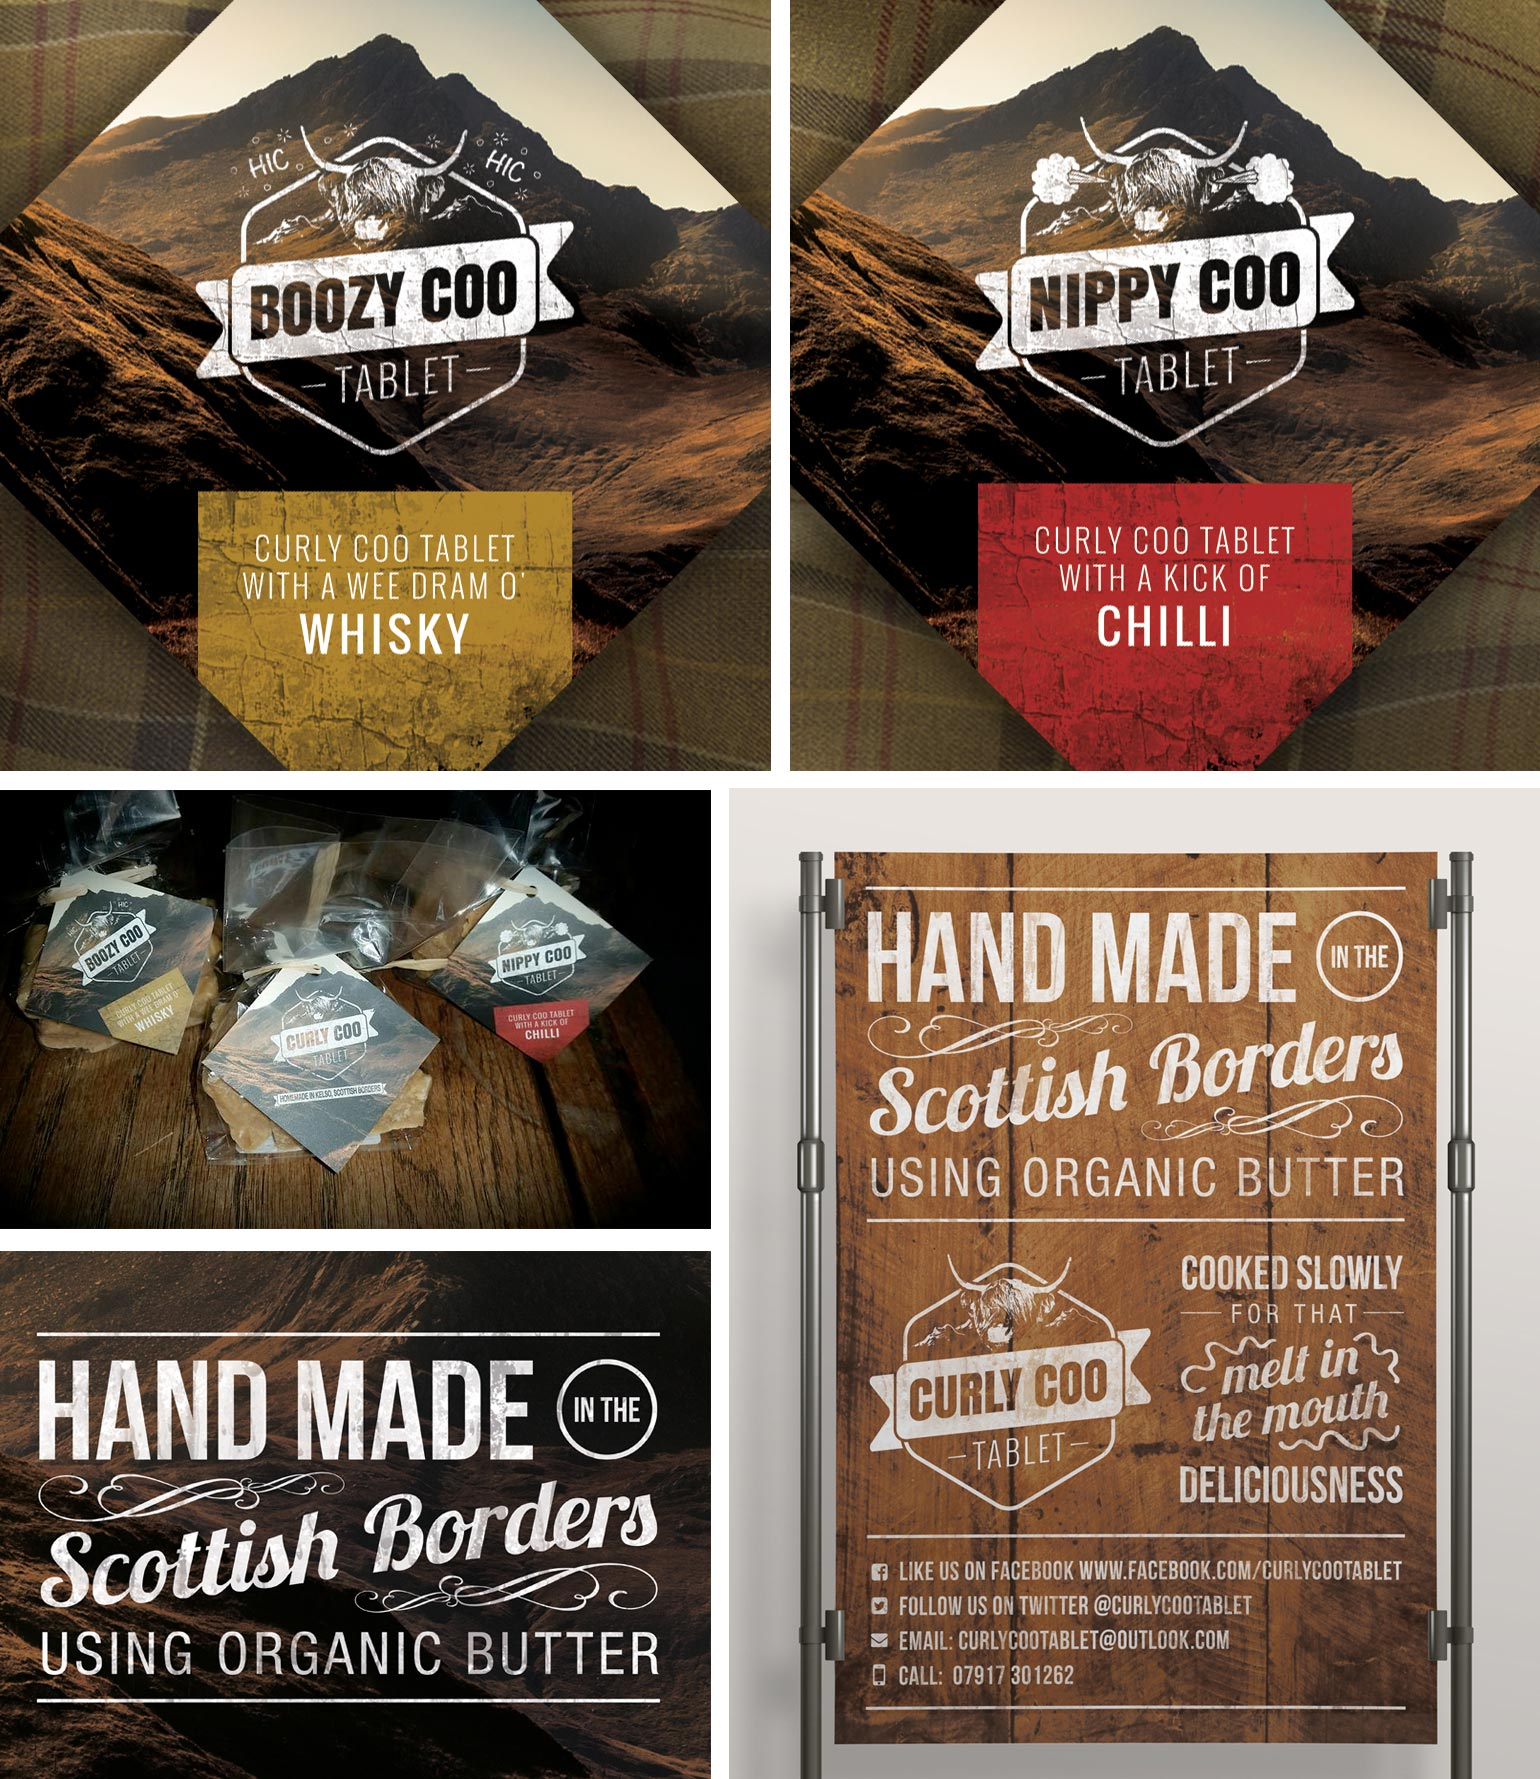 Curly Coo Branding & Labels